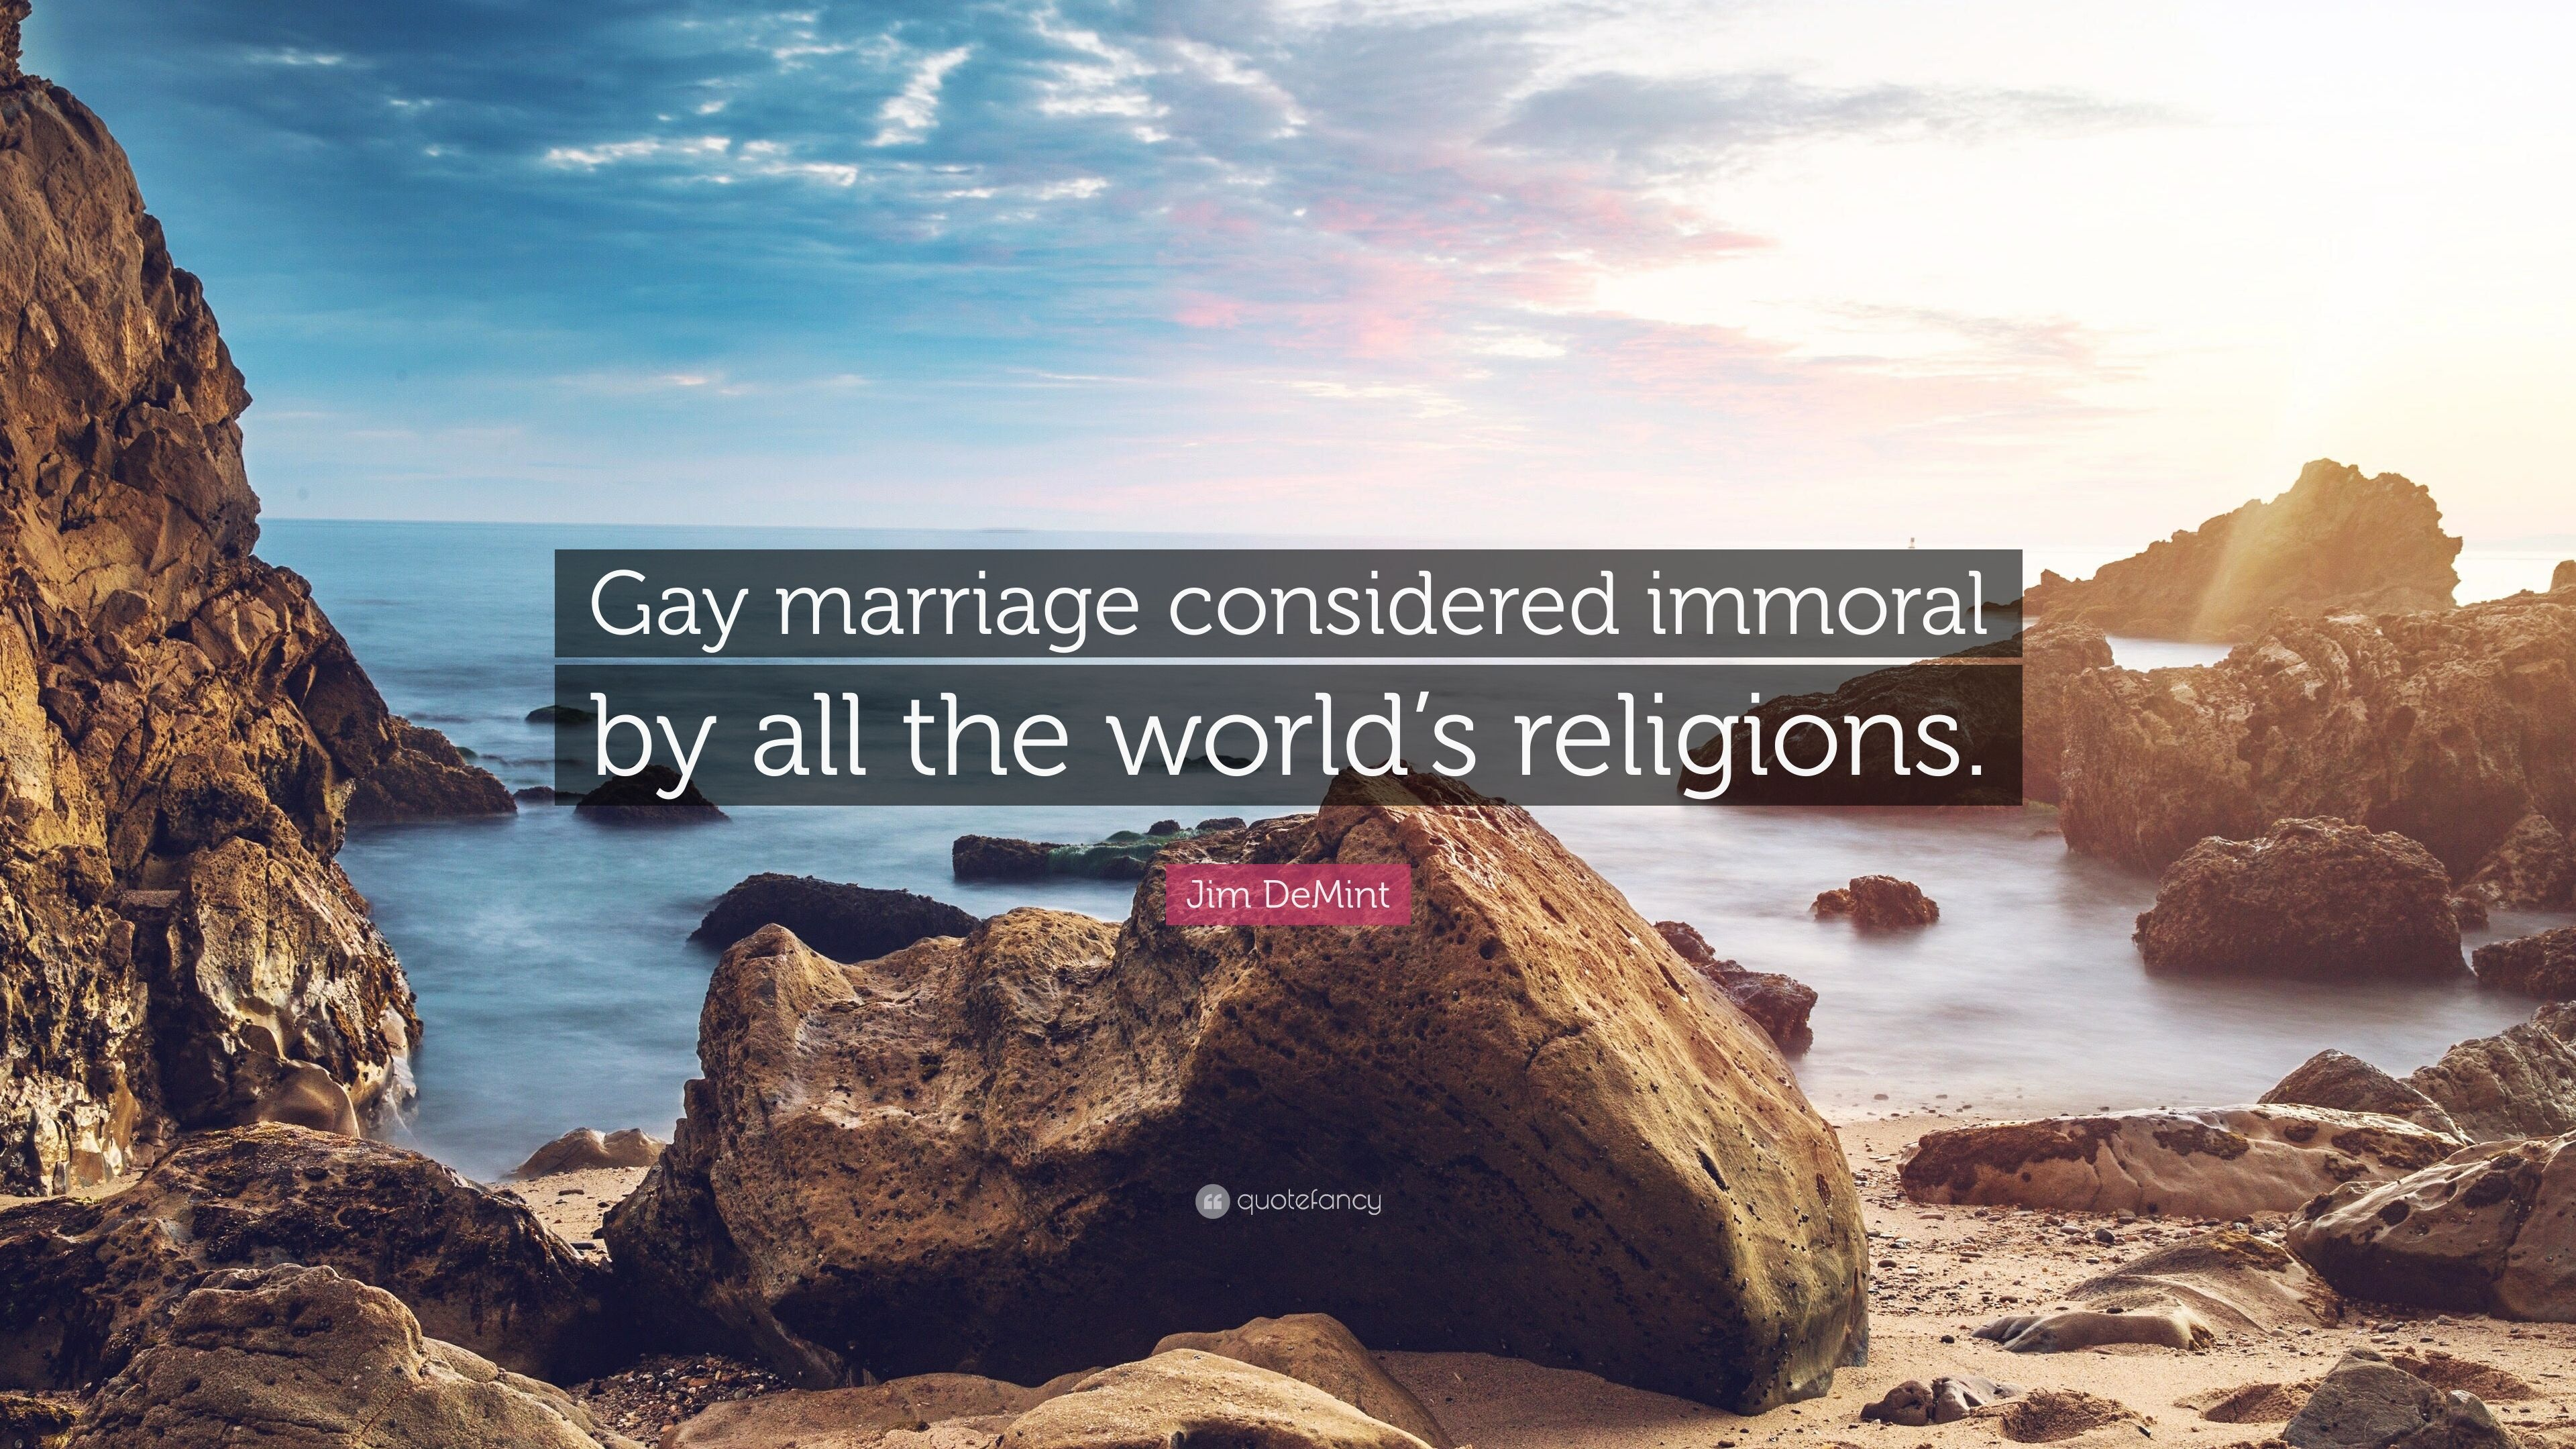 religions-for-gay-marriage